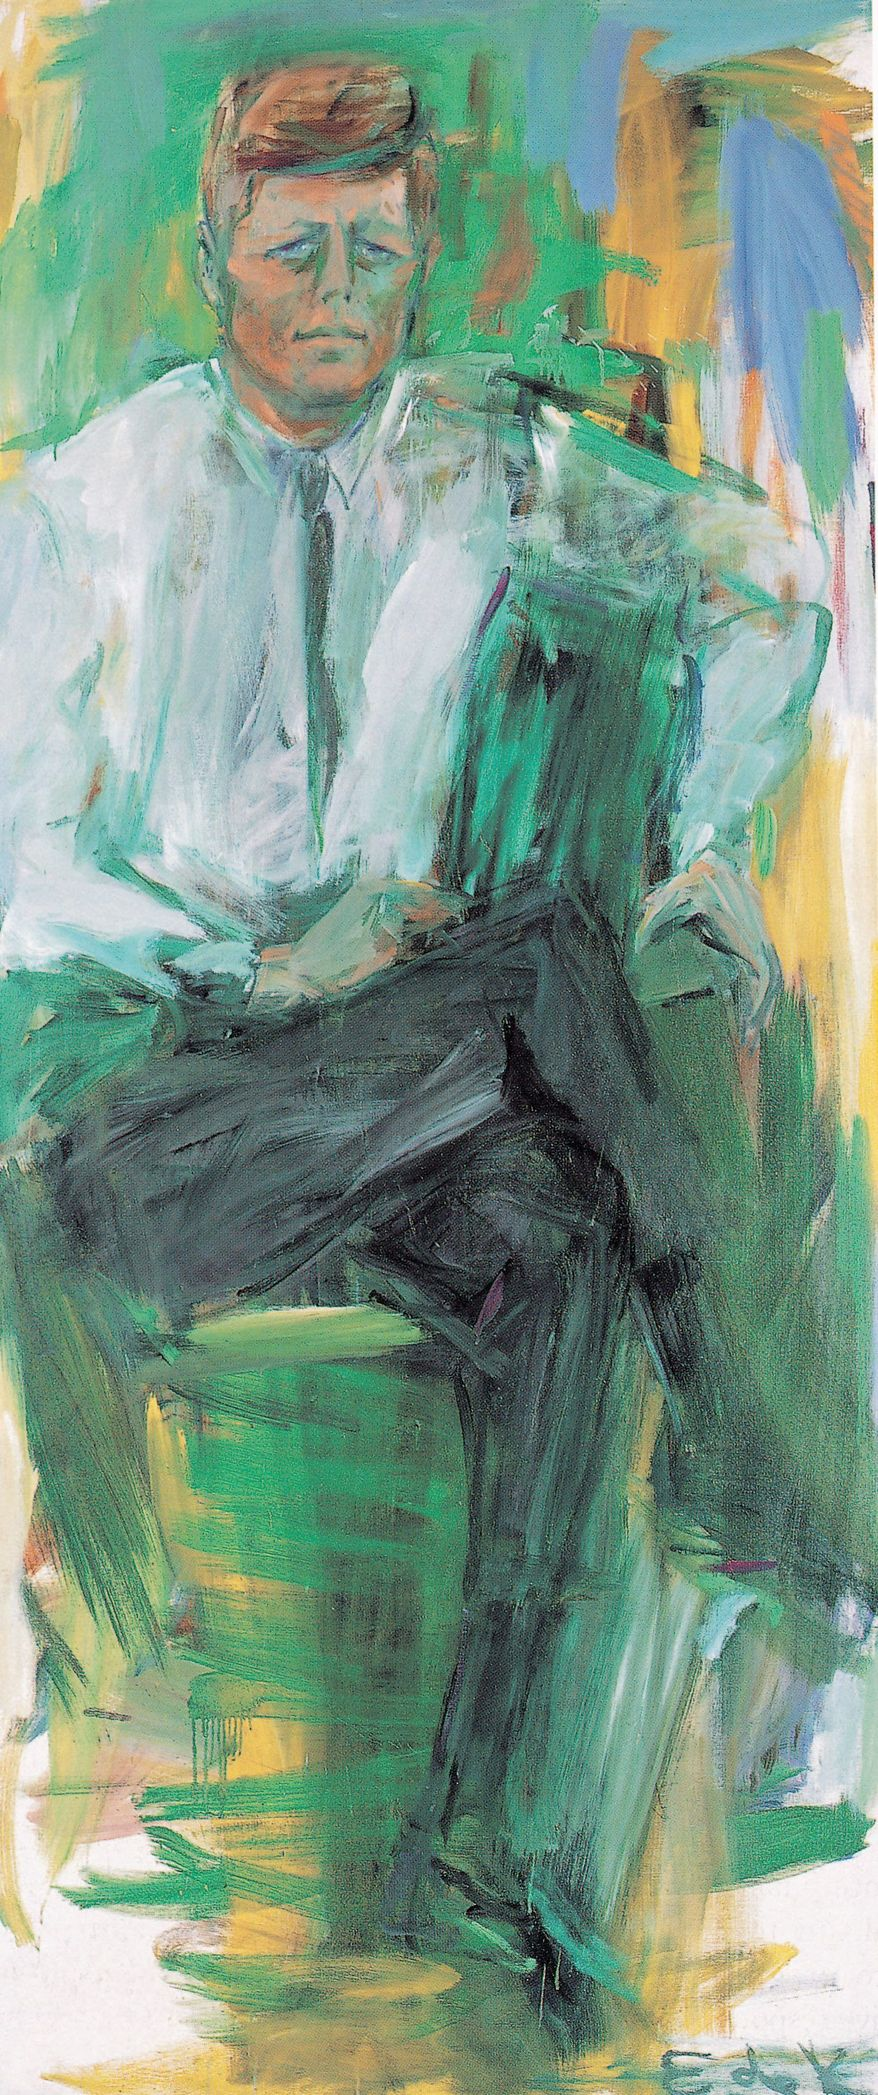 John F. Kennedy's radically altered appearance during the president's seven sittings posed a challenge to portrait painter Elaine de Kooning, who created 23 versions but was most pleased with an abstract expressionist work that captured his kinetic energy. (Photograph provided by the National Portrait Gallery)